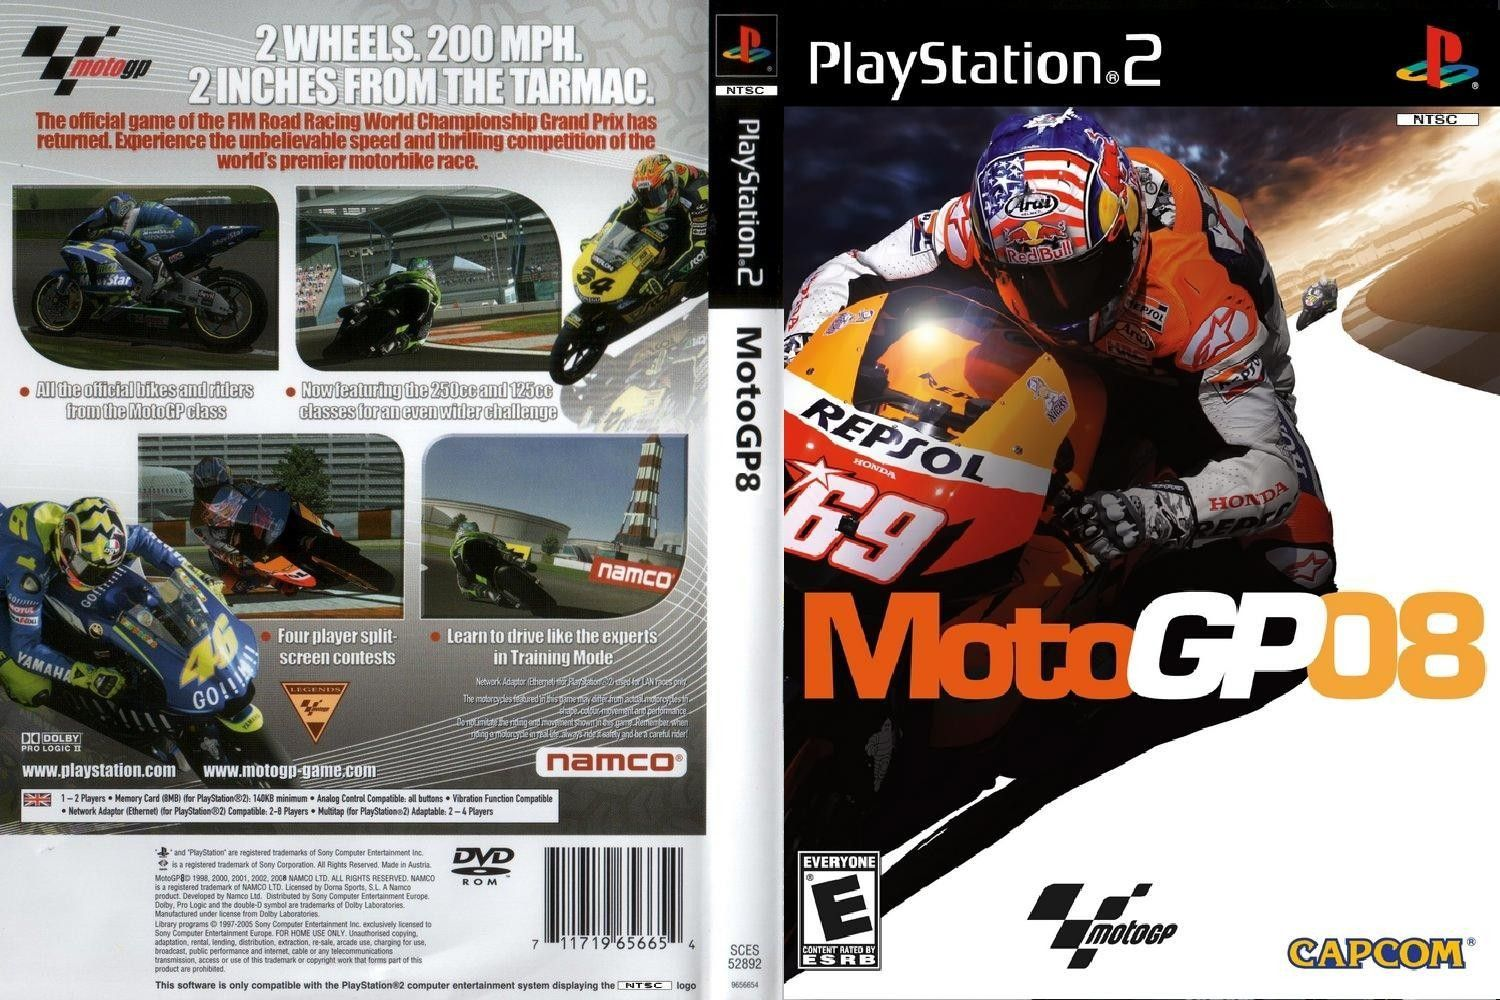 Moto_Gp_08-DVD-PS2.jpg